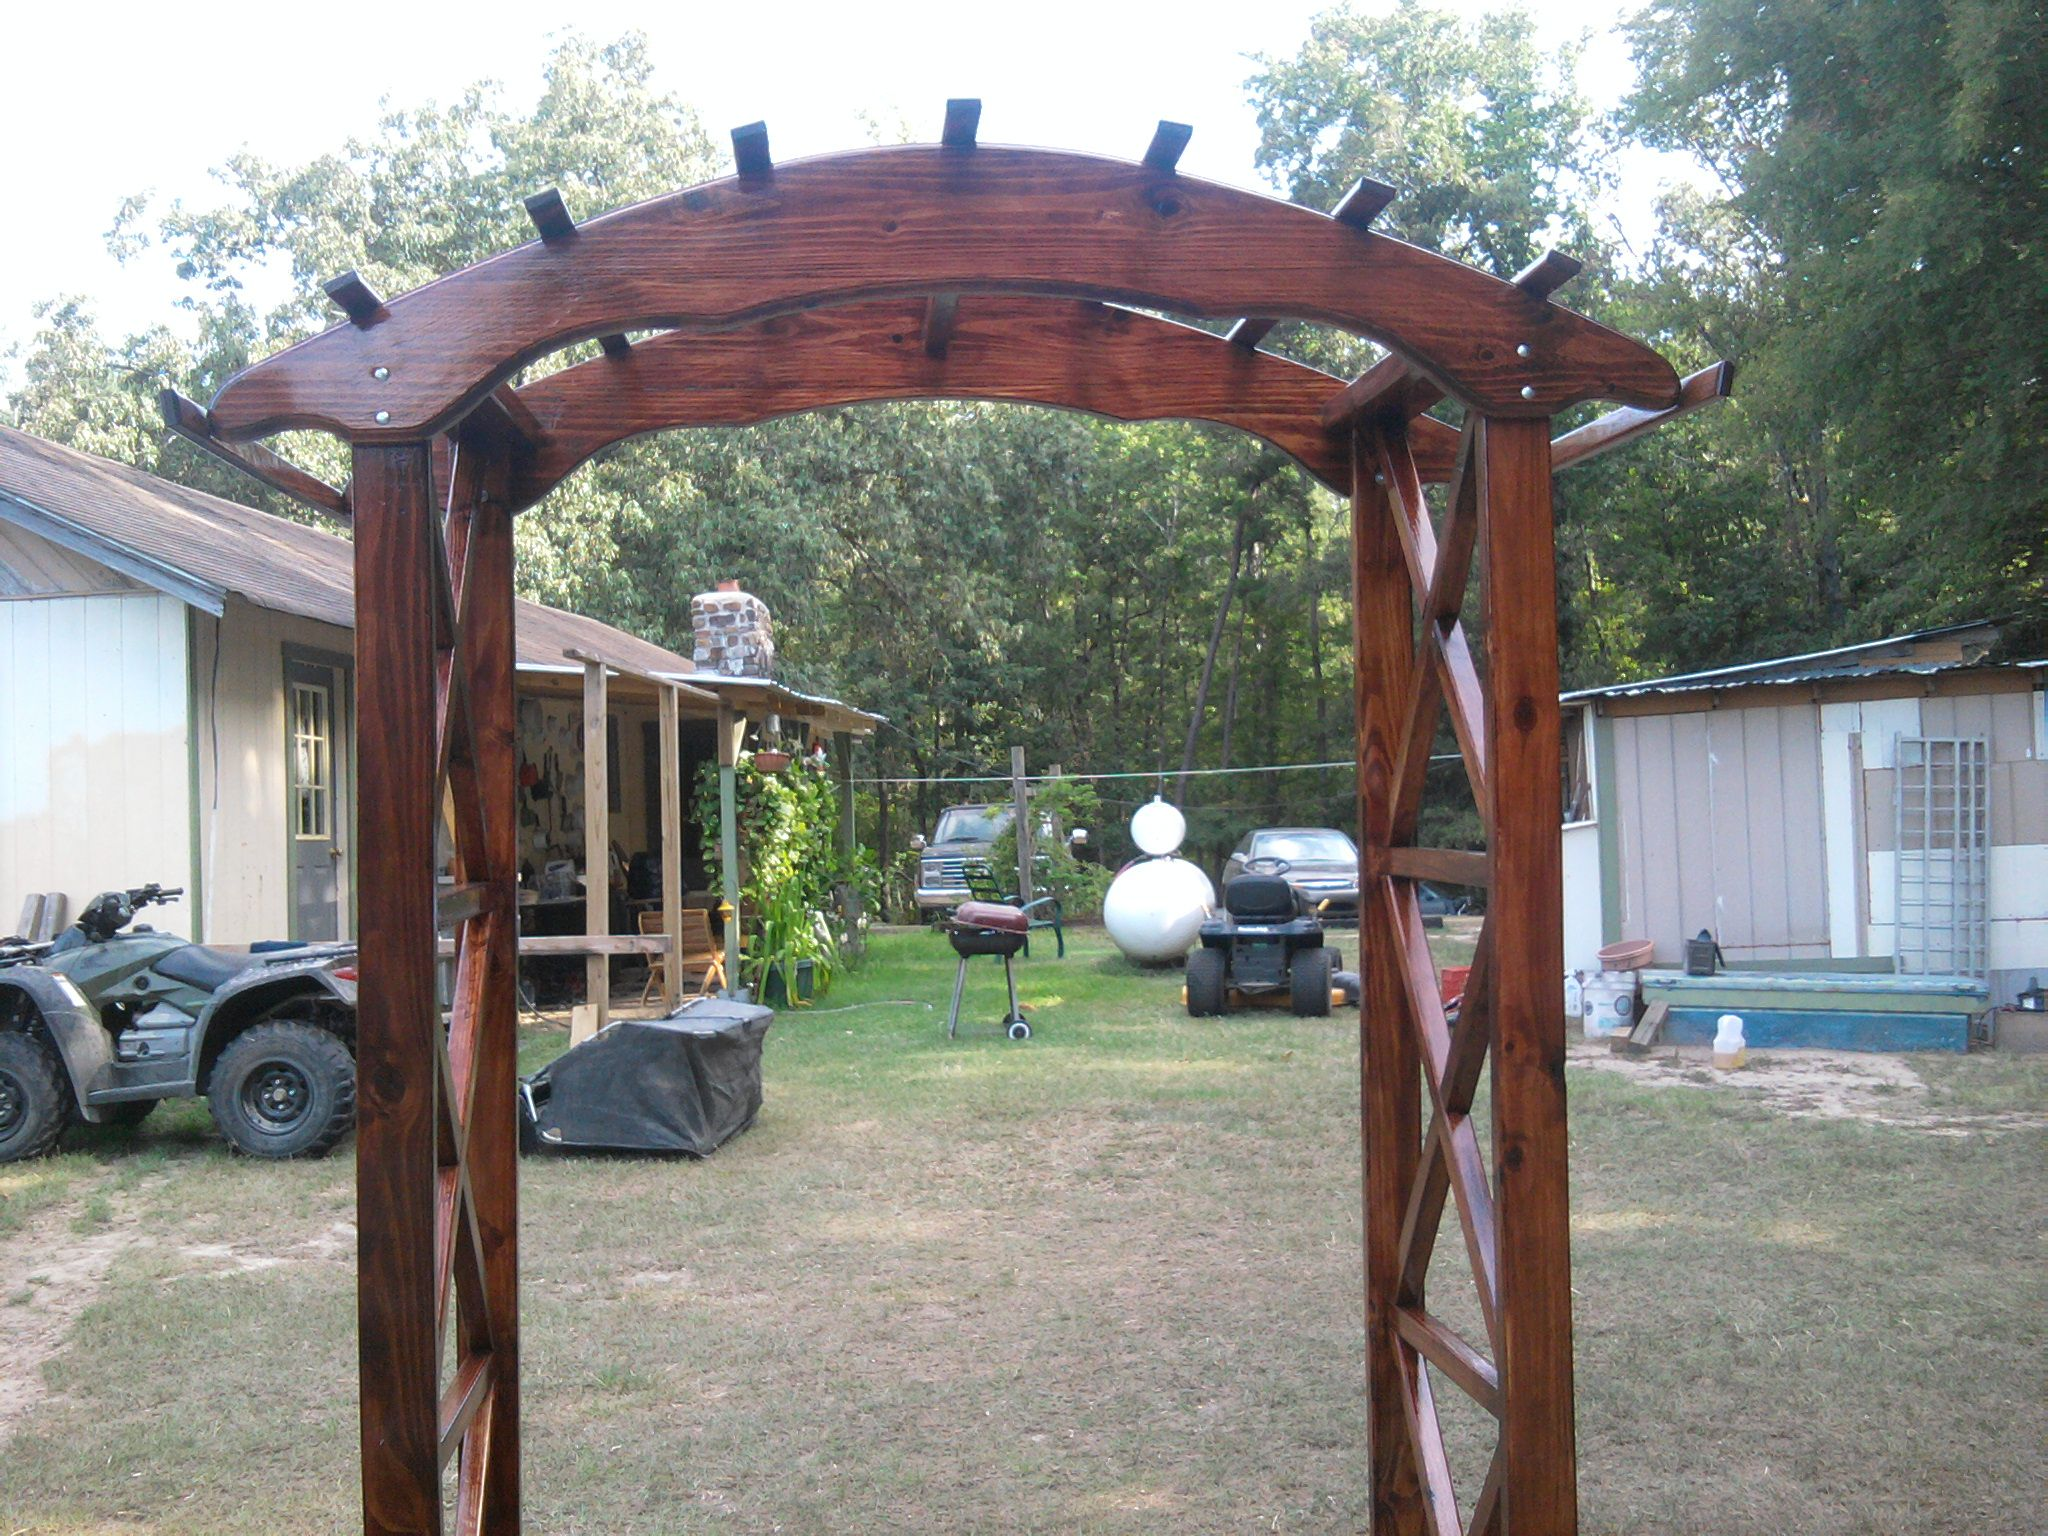 wedding arches wedding canopy wooden arches you can make for wedding Rustic X wedding arch